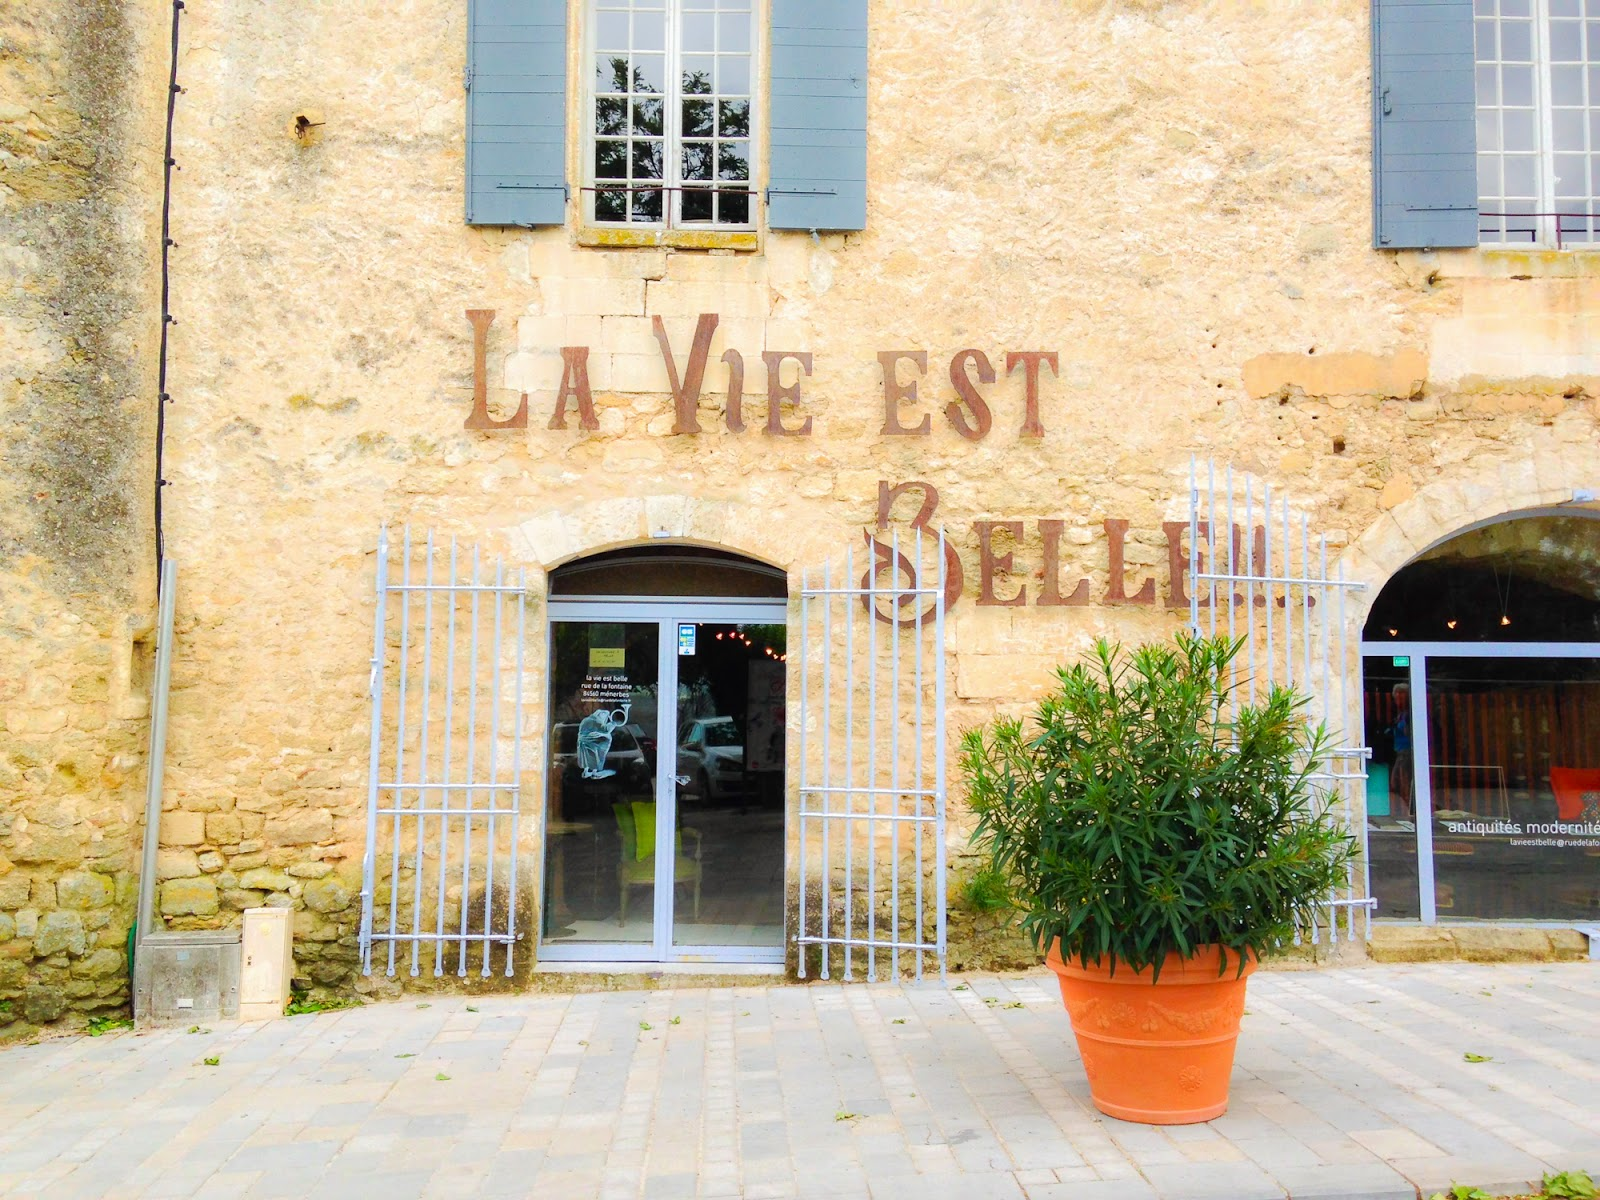 Chic provence *: if you came to provence with me...in 2015...